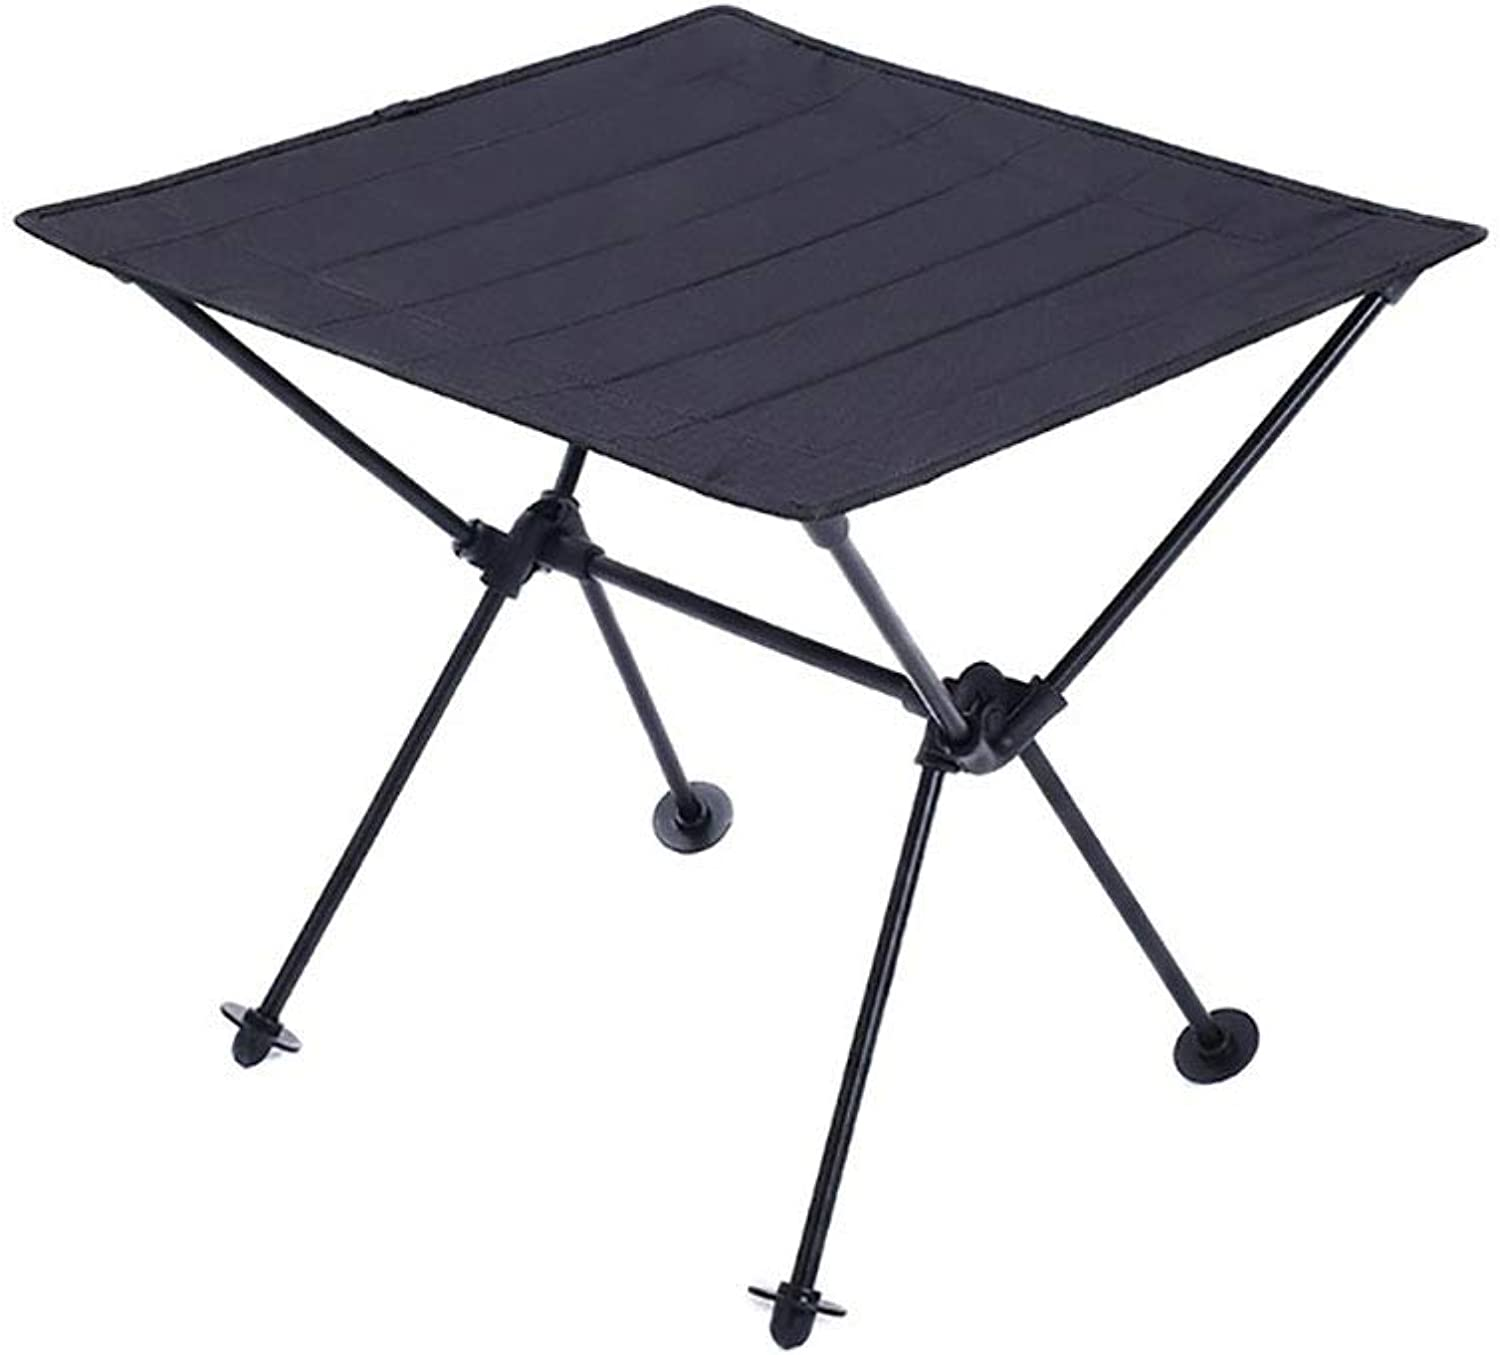 Portable Lightweight Folding Table for Fishing Picnic Beach with Carrying Bag, Camping Table